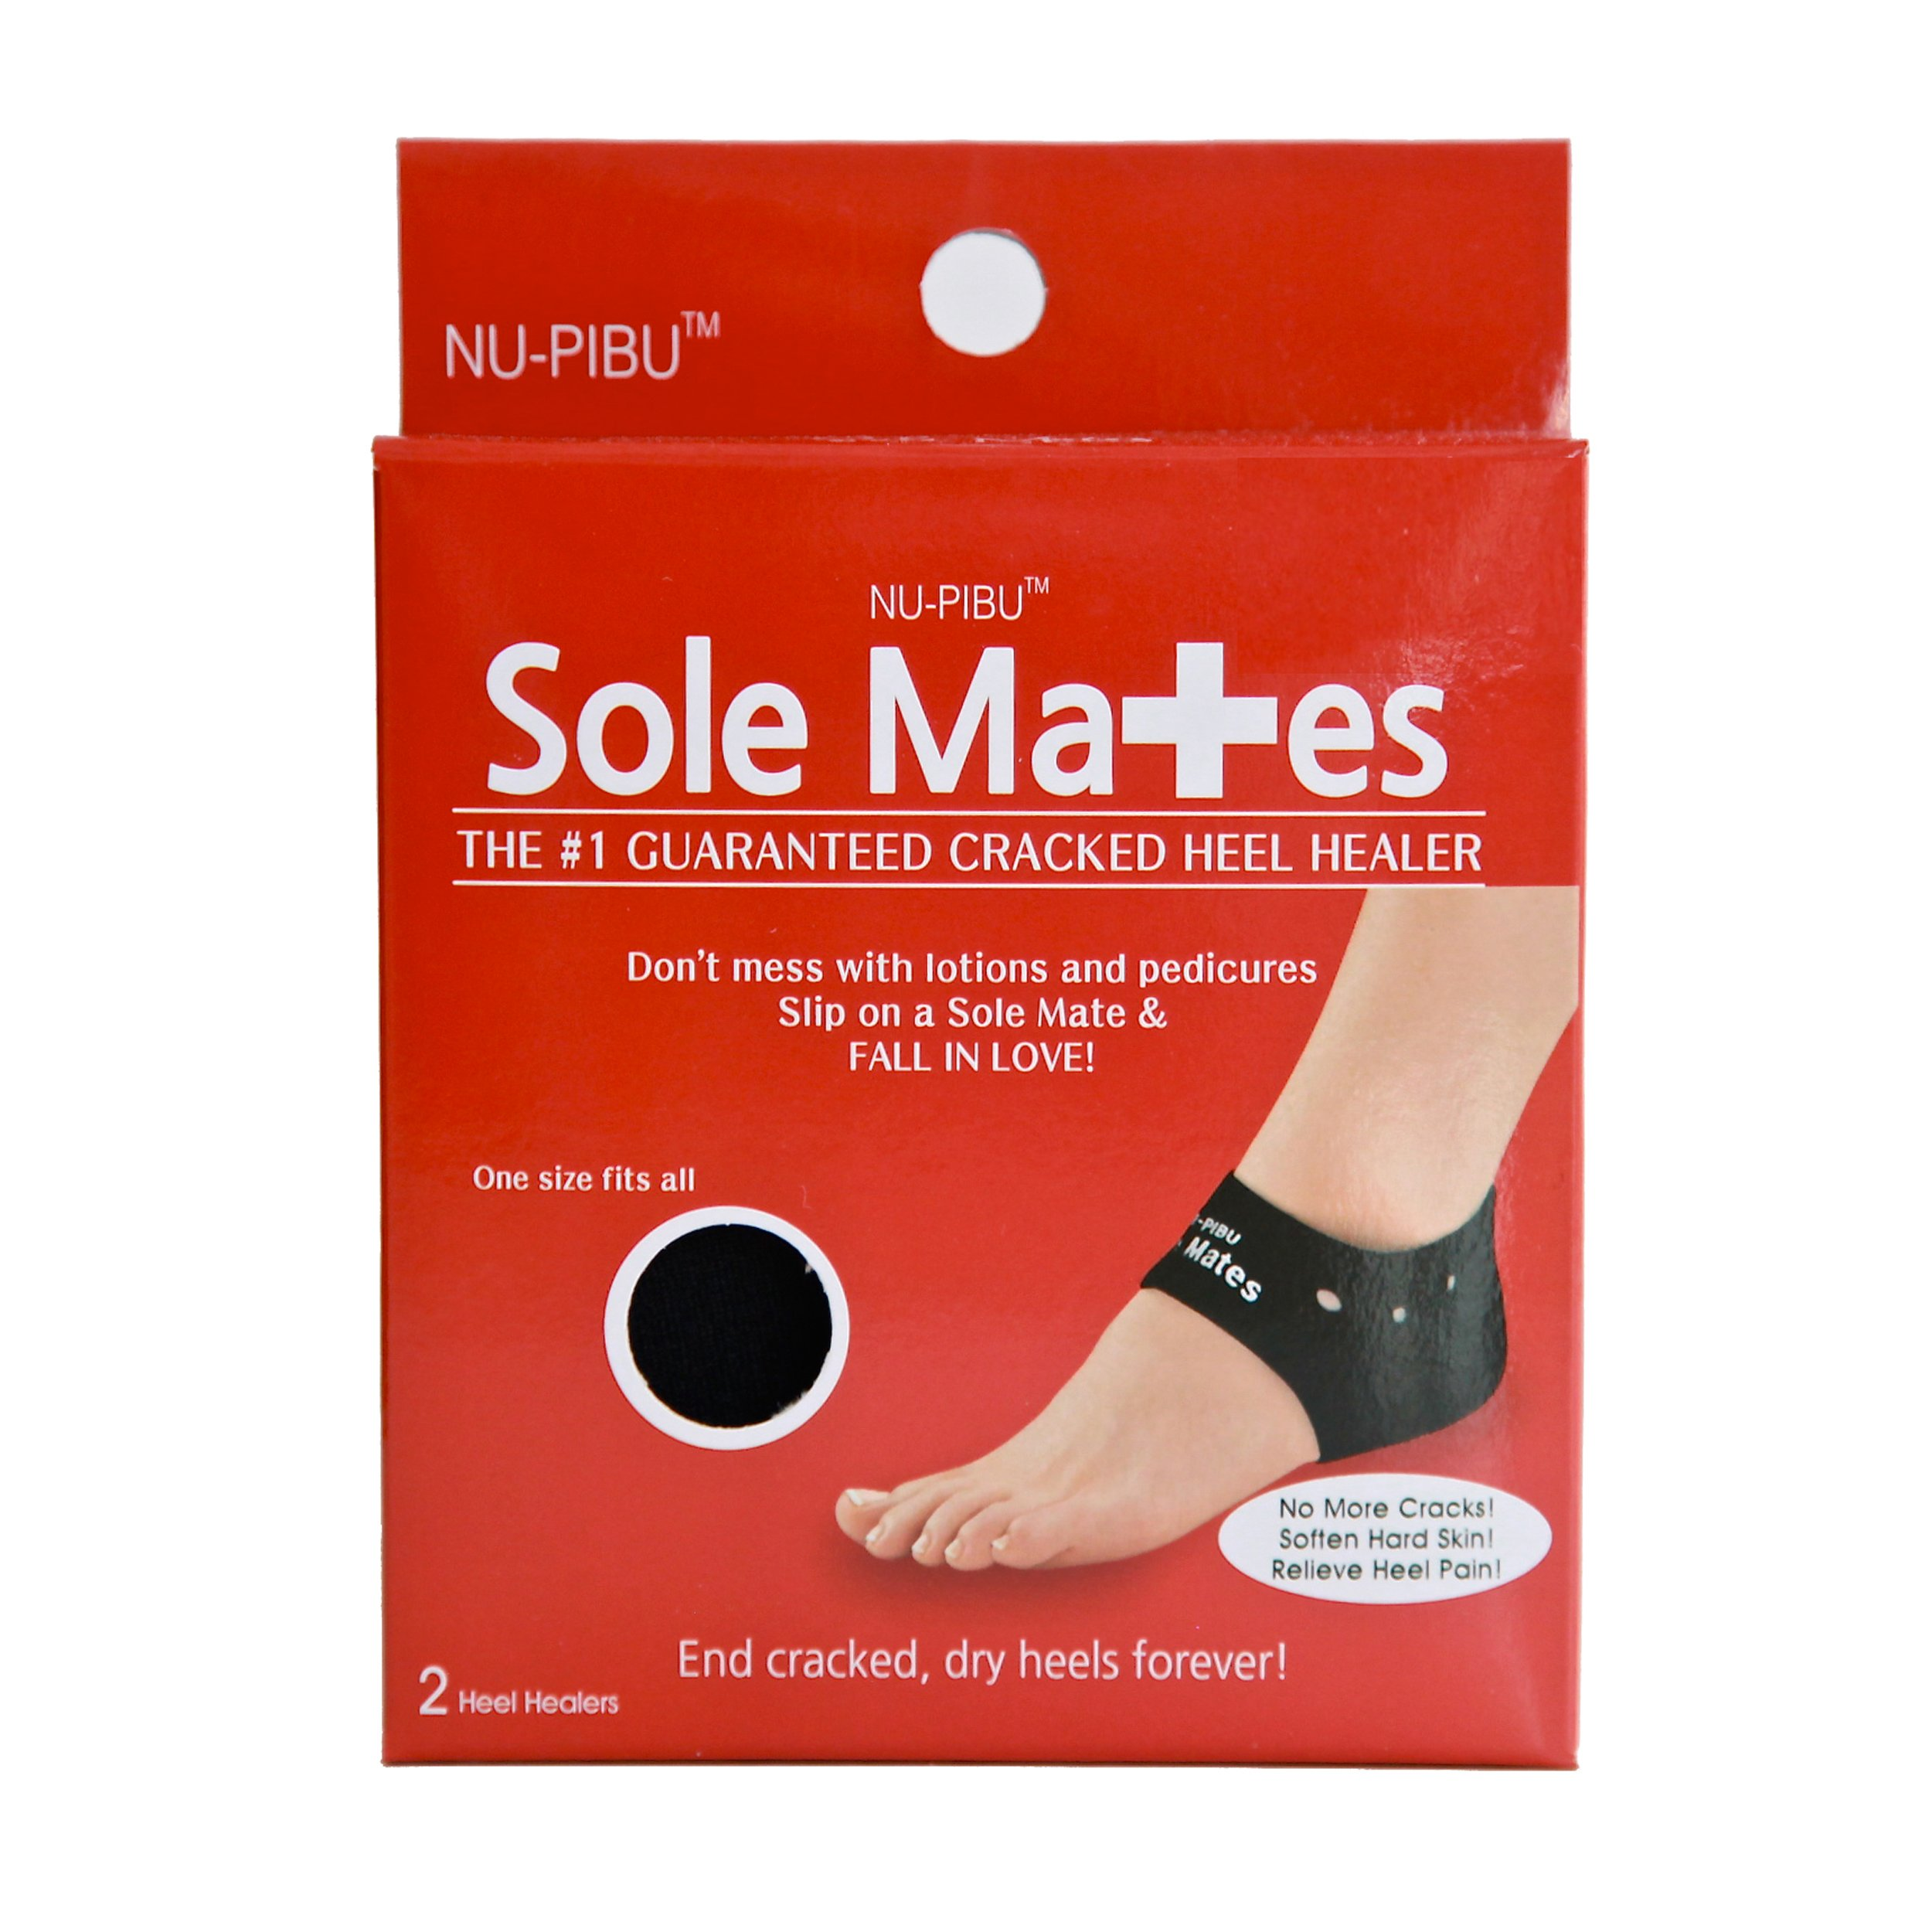 Sole Mates - Cracked Heel Healers!! You can begin healing painful cracks and rough, dry heels instantly! Don't mess with lotions and pedicures- heal your cracked skin naturally from the inside out! by NU-PIBU